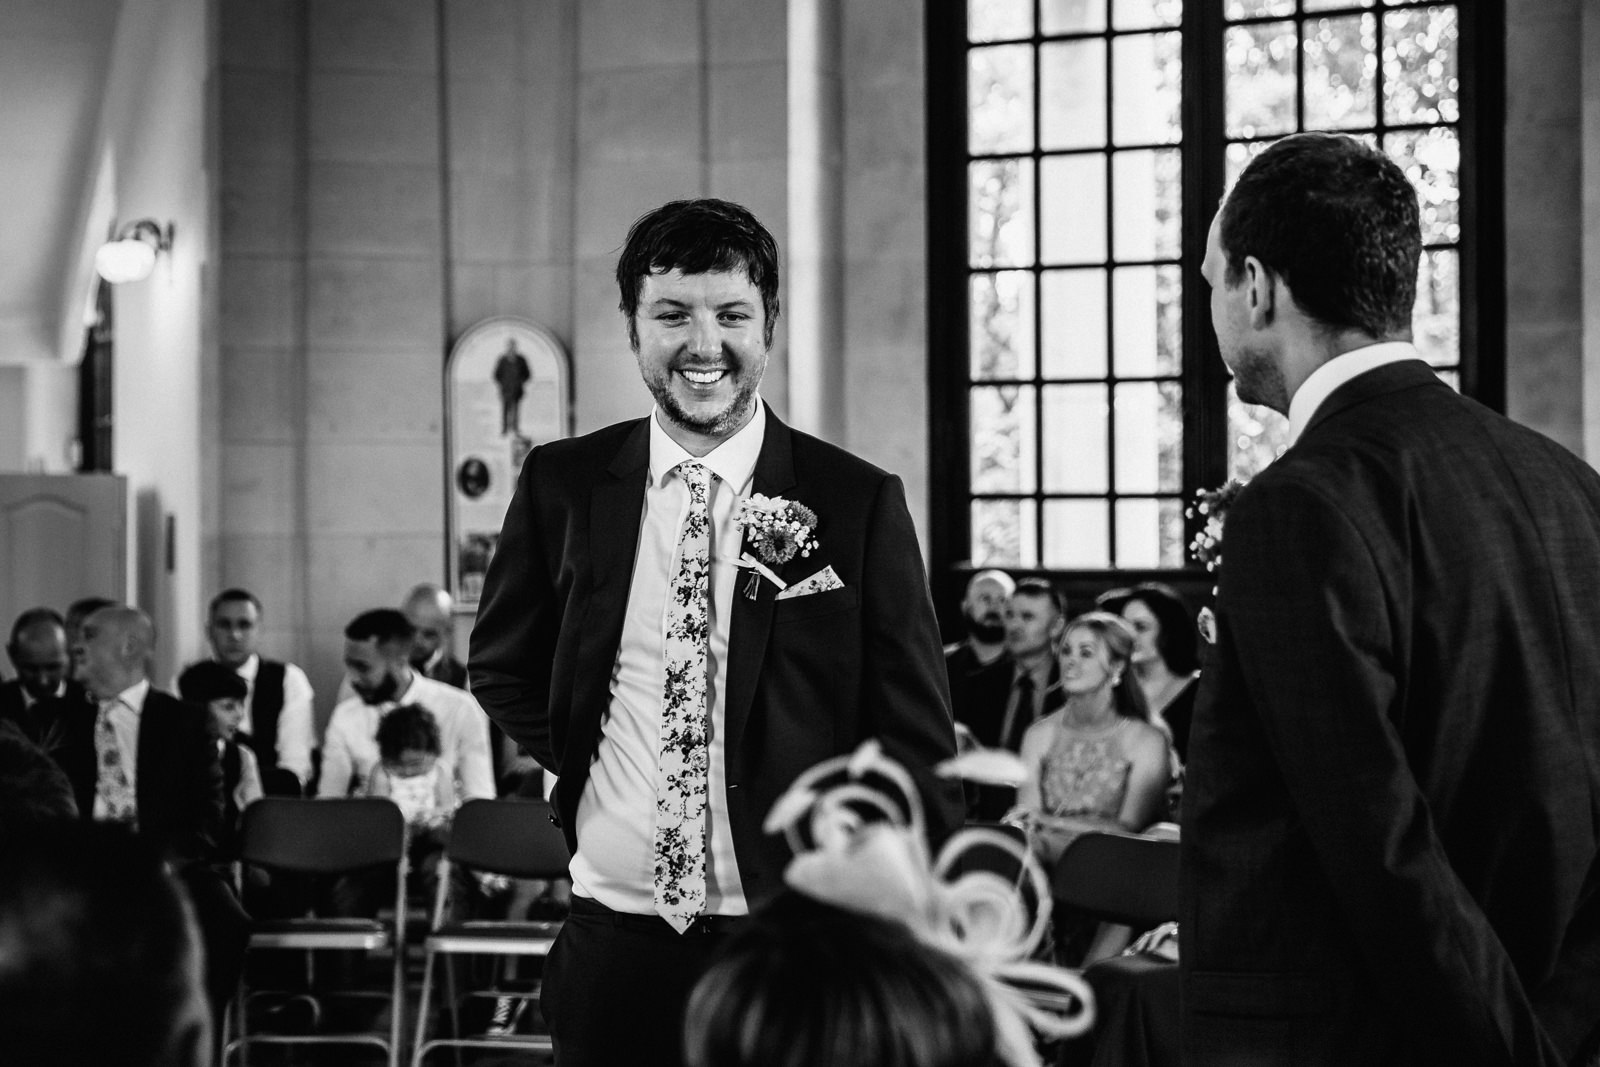 Groom stood smiling waiting for his bride to be